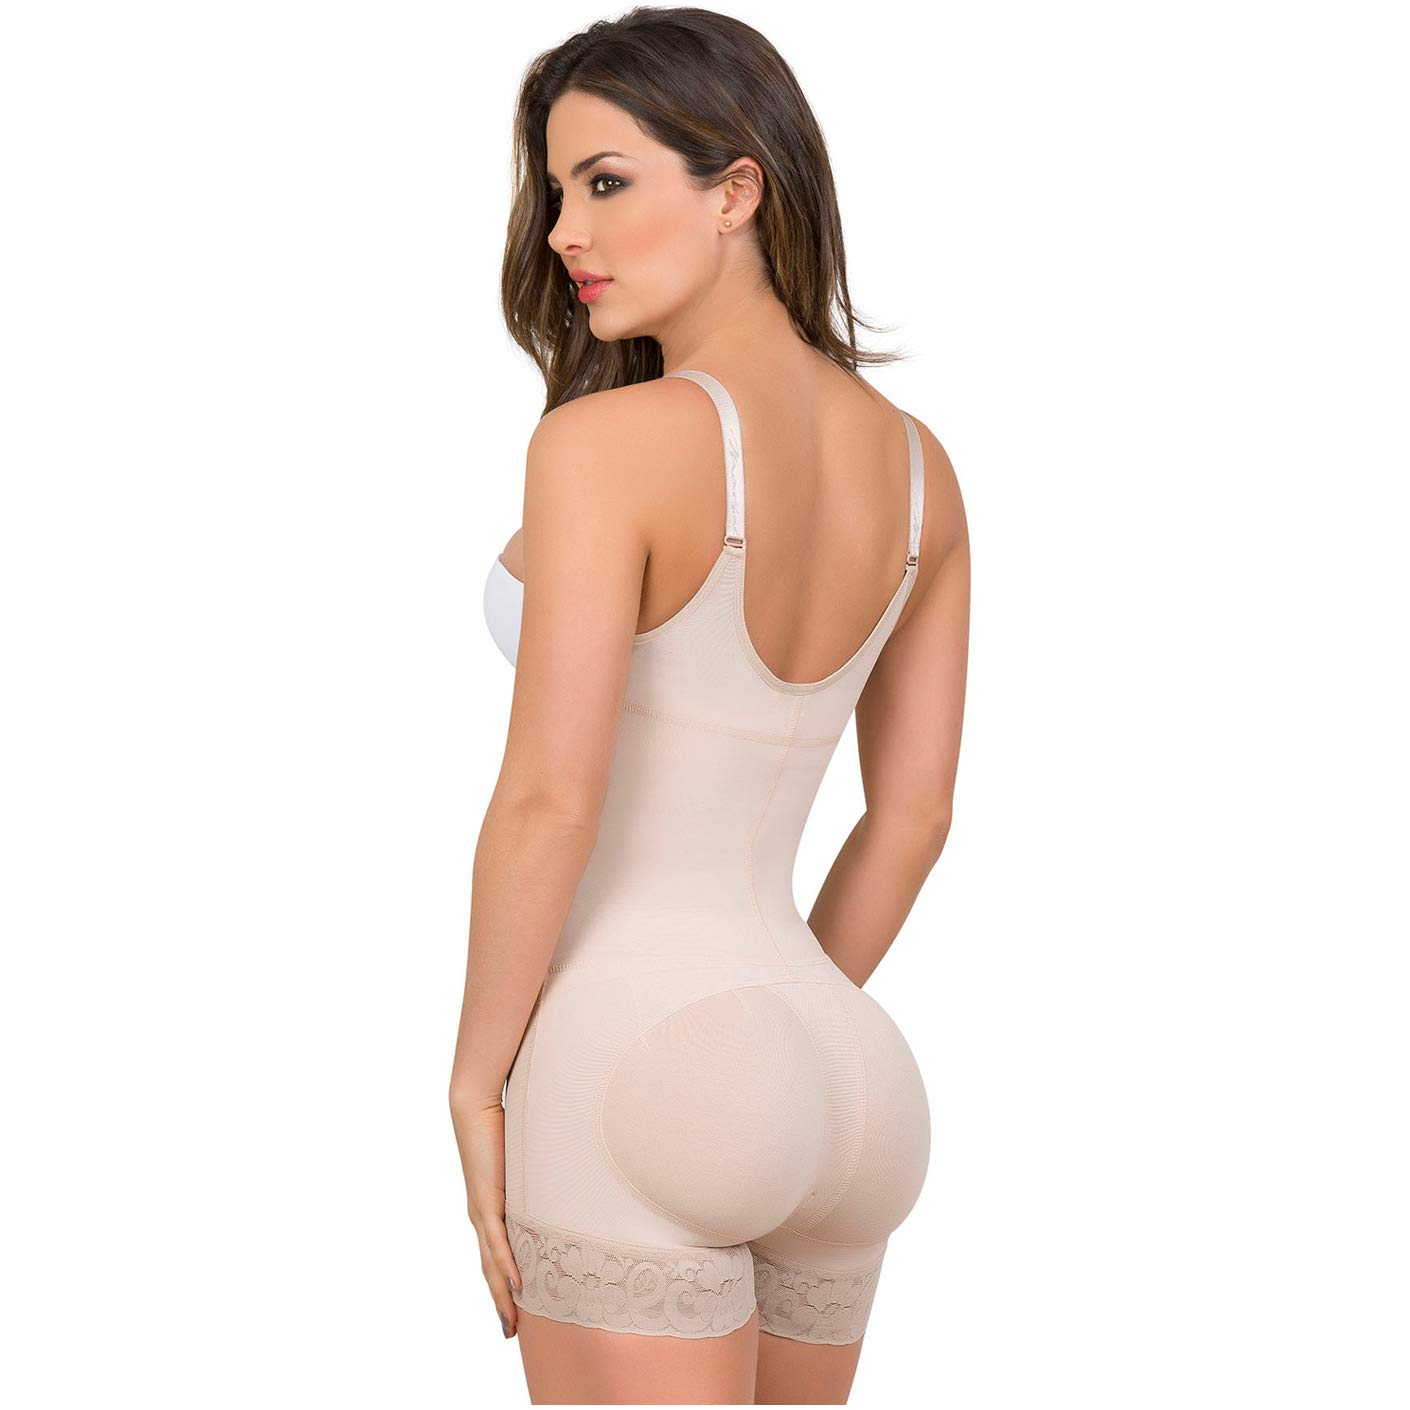 98a0e3228c556 MARIAE 9235 Braless Slimming Girdle Tummy Control Shapewear